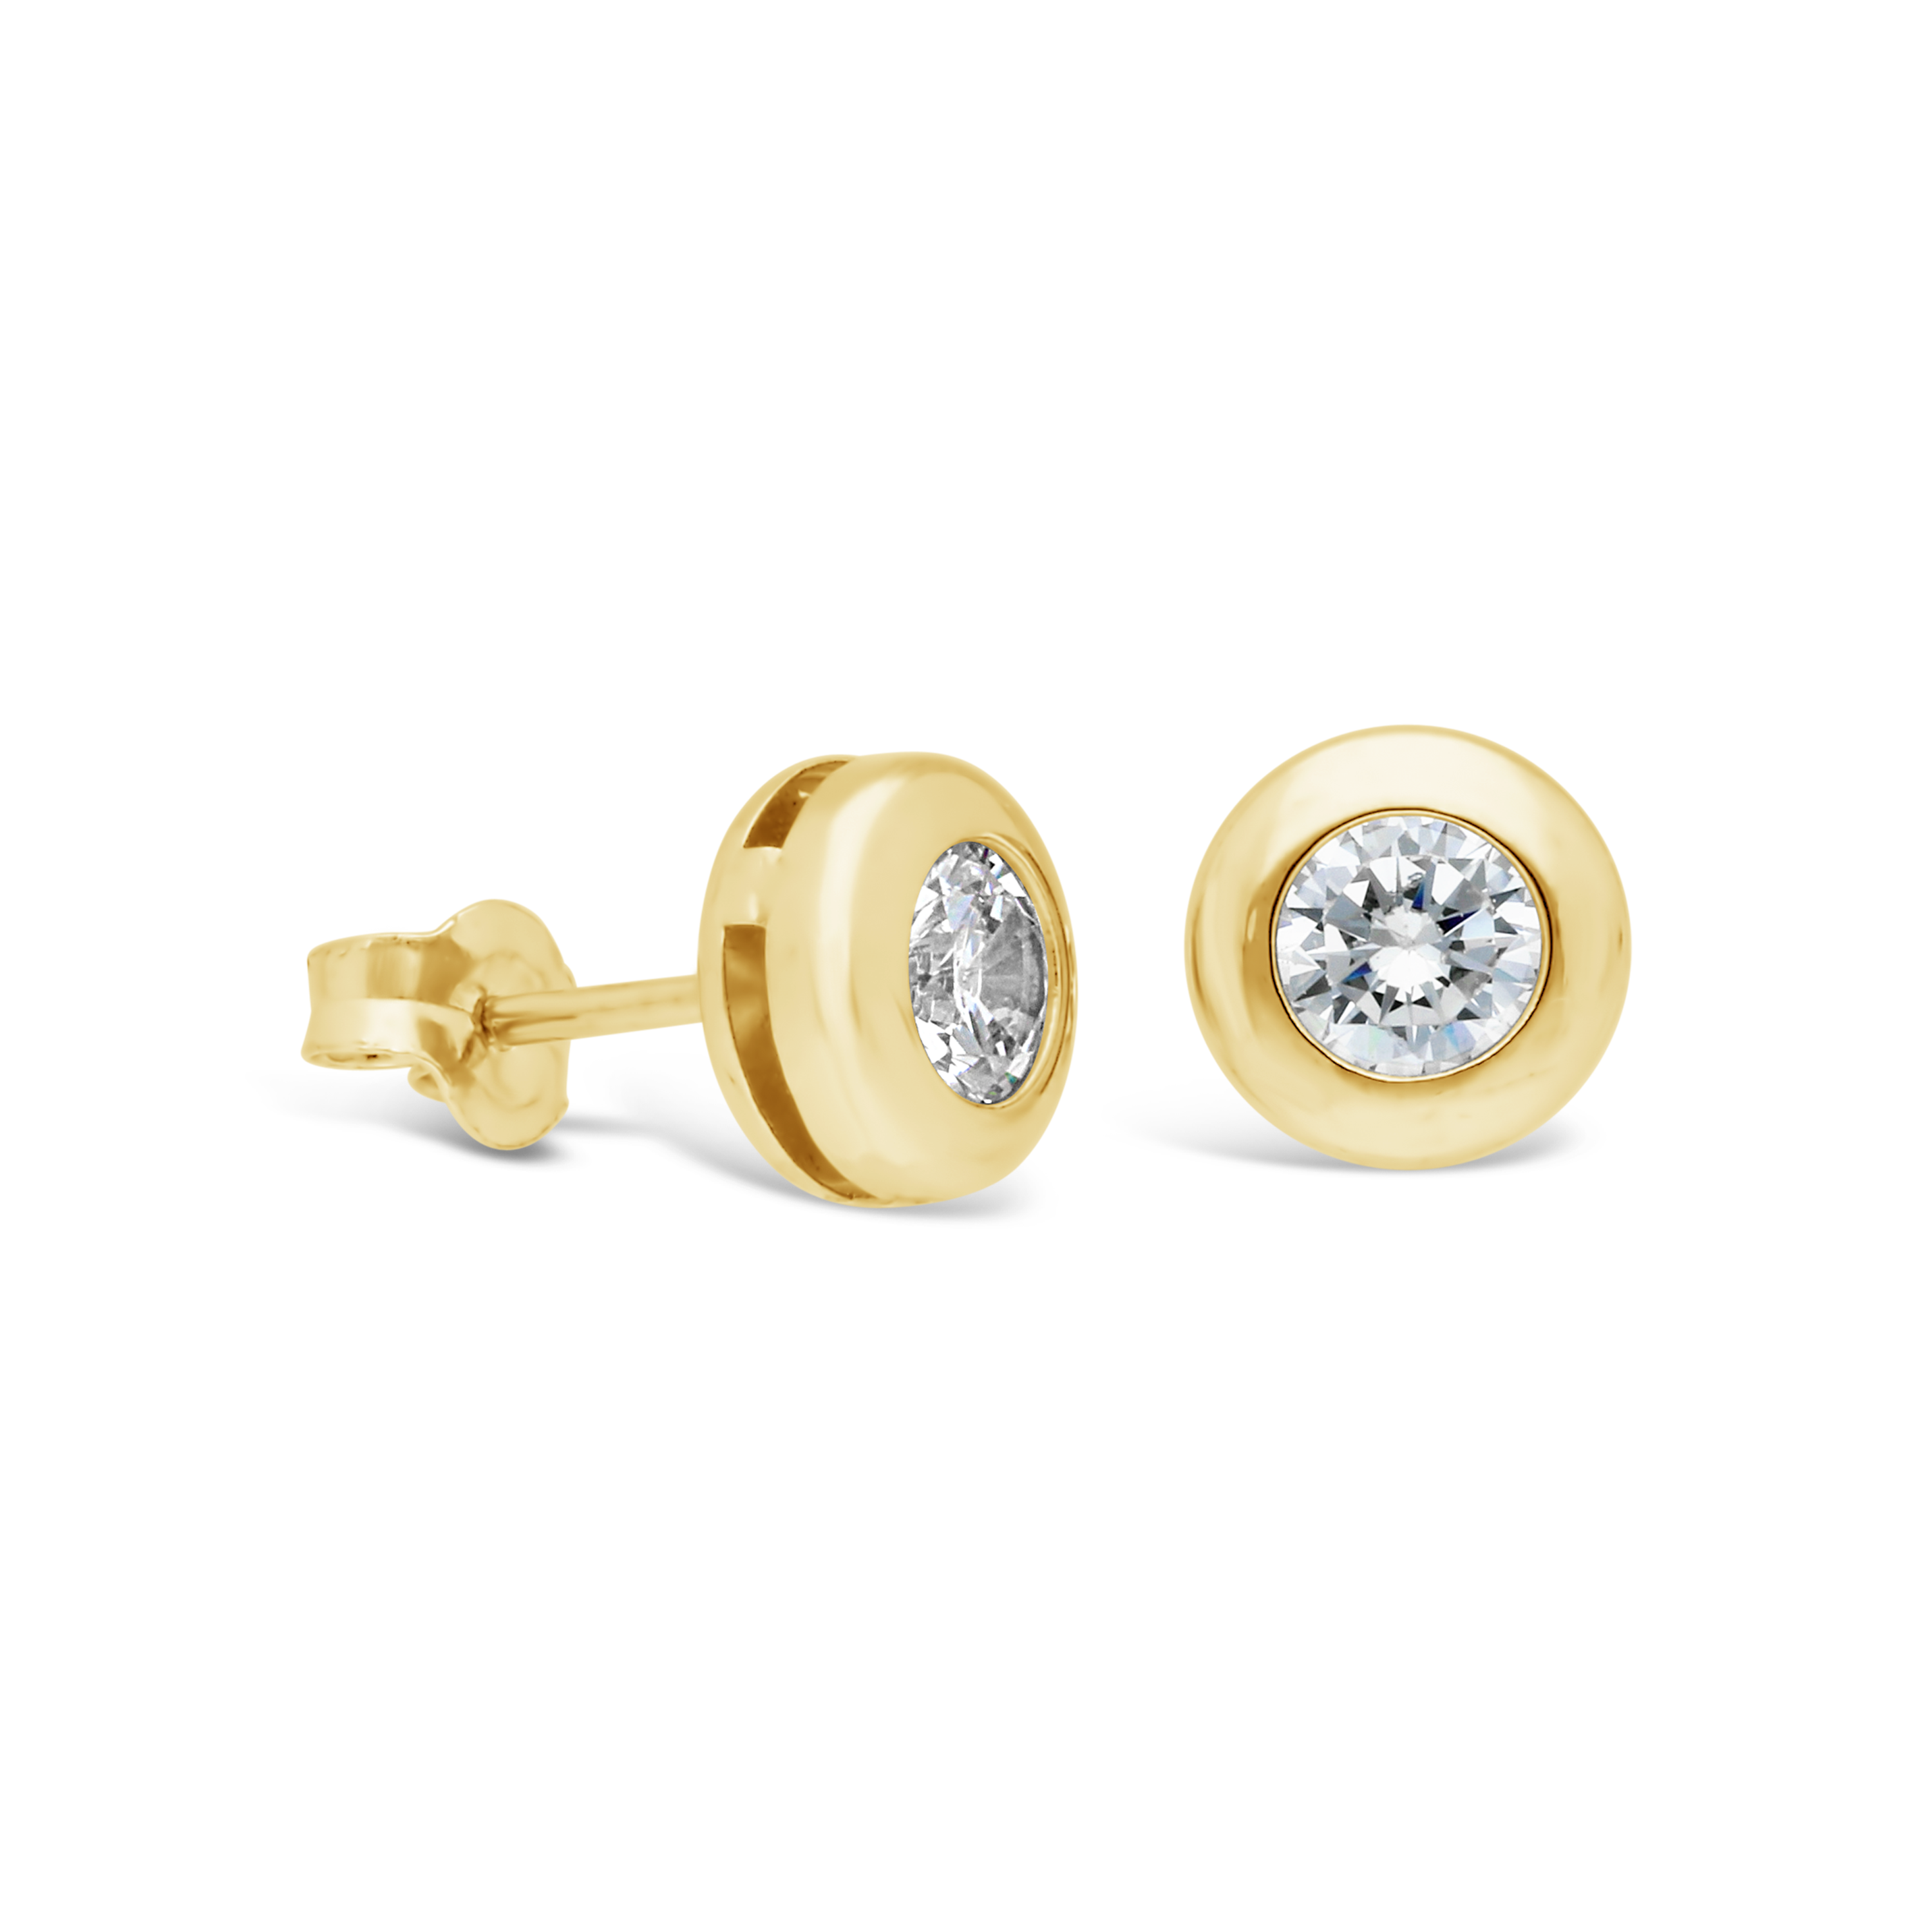 cfdf7b964 9ct Gold 4mm Tube Set Cubic Zirconia Stud Earrings - NWJ